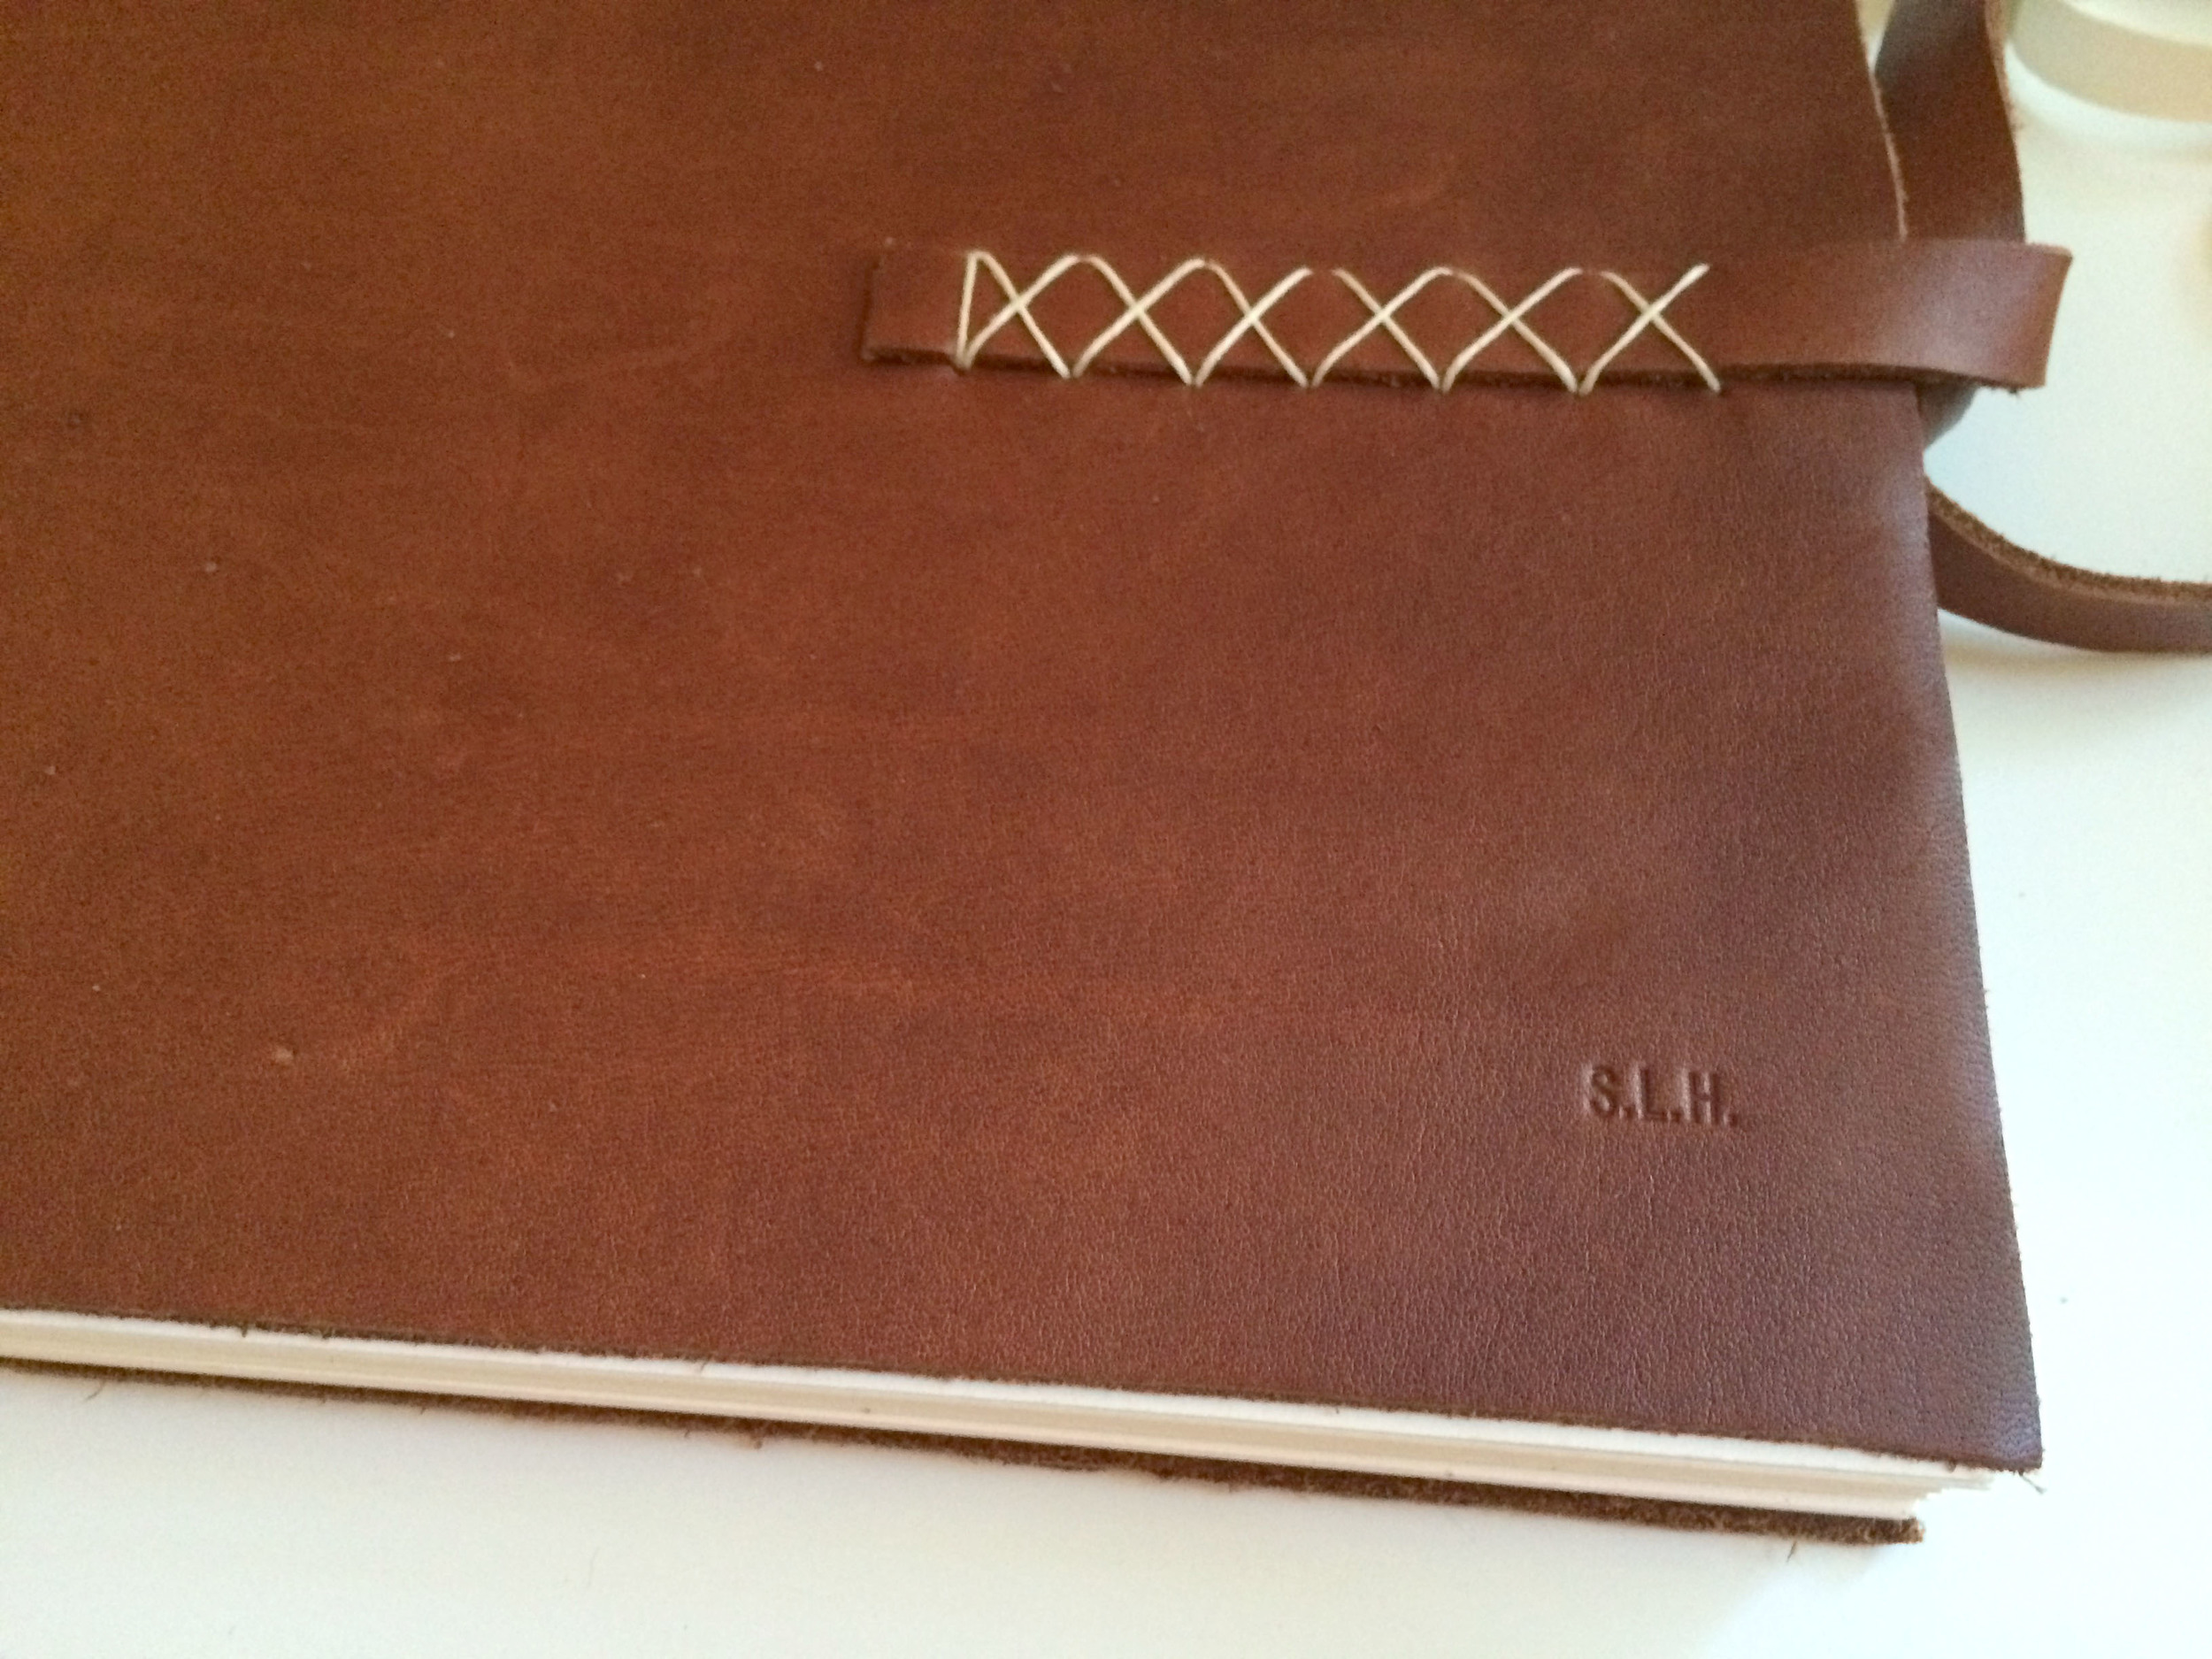 Leather Sketchbook_detail with initials.jpg